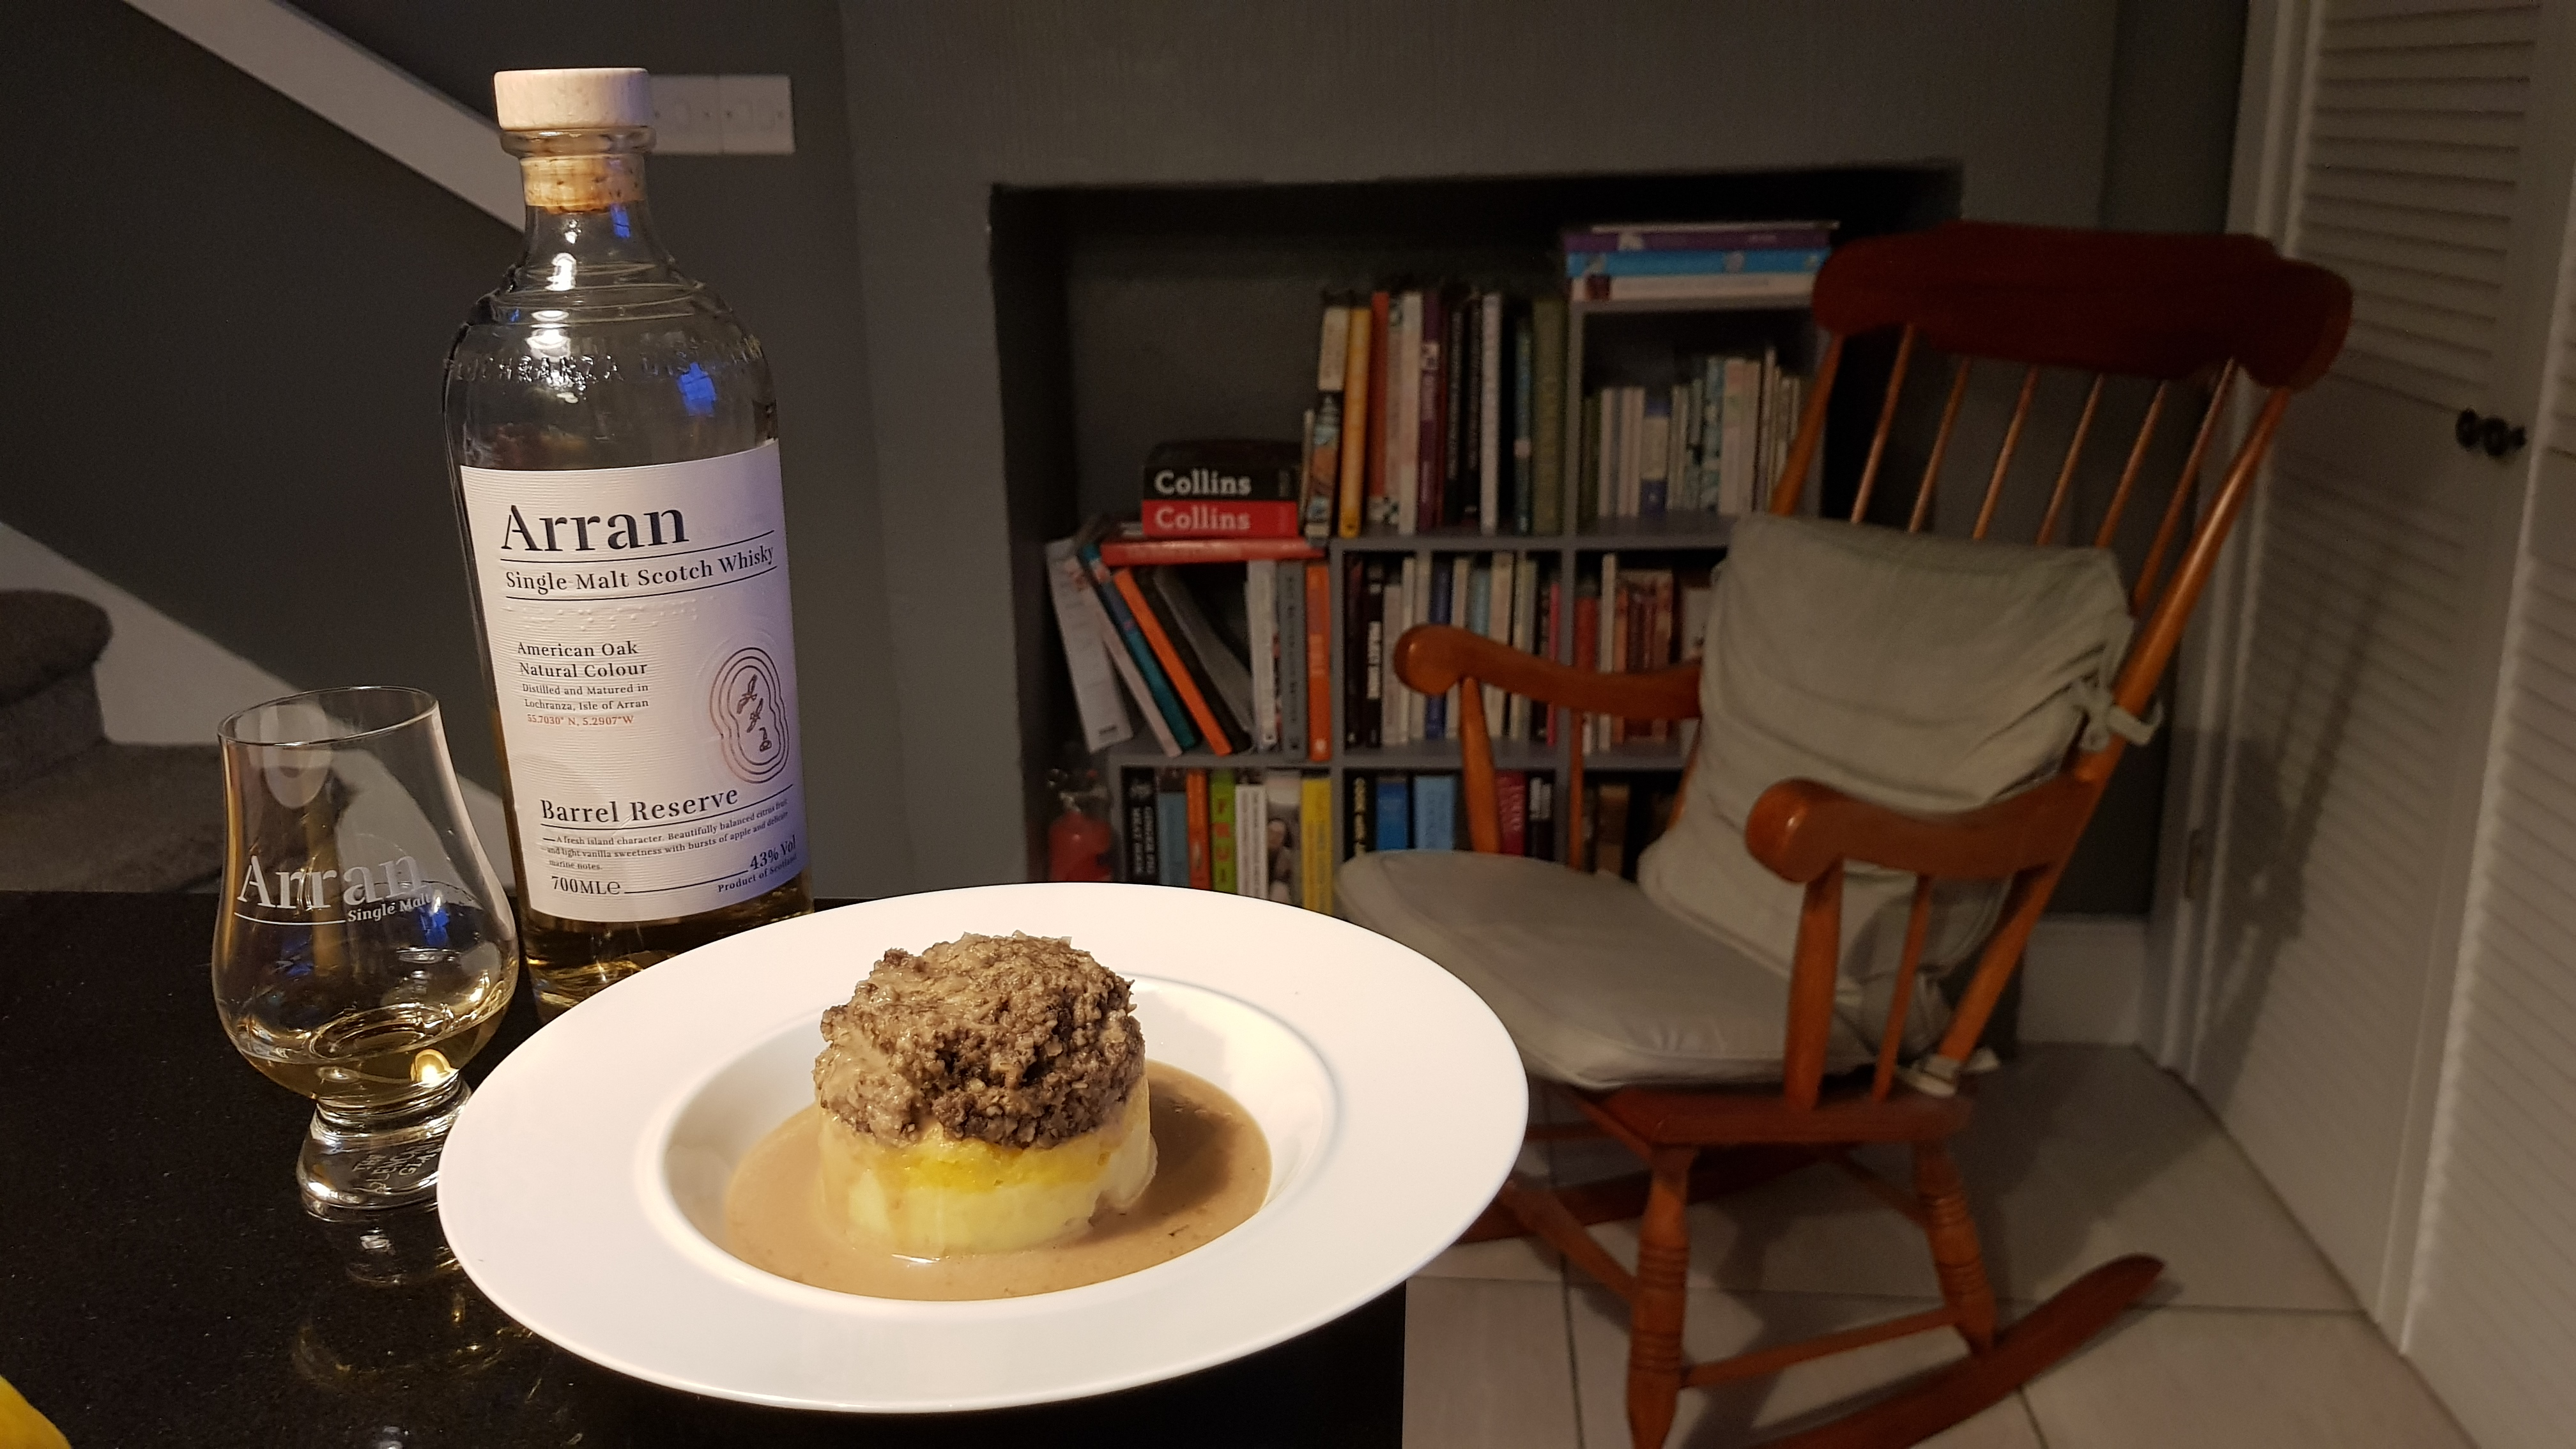 Haggis, Neeps and Tatties with Barrel Reserve